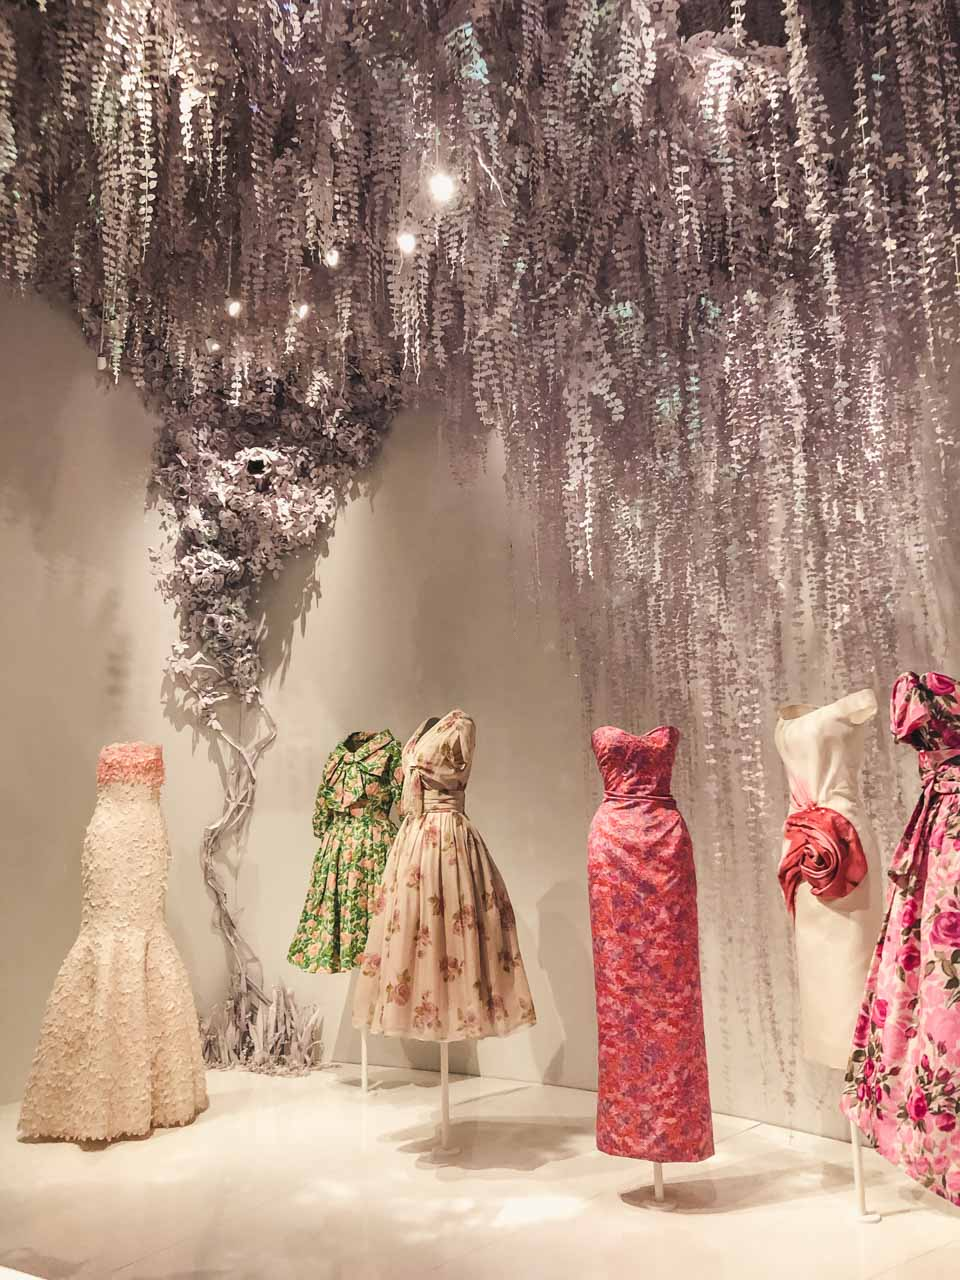 Dior gowns on display in the garden room of the Dior exhibition at the Victoria and Albert Museum in London